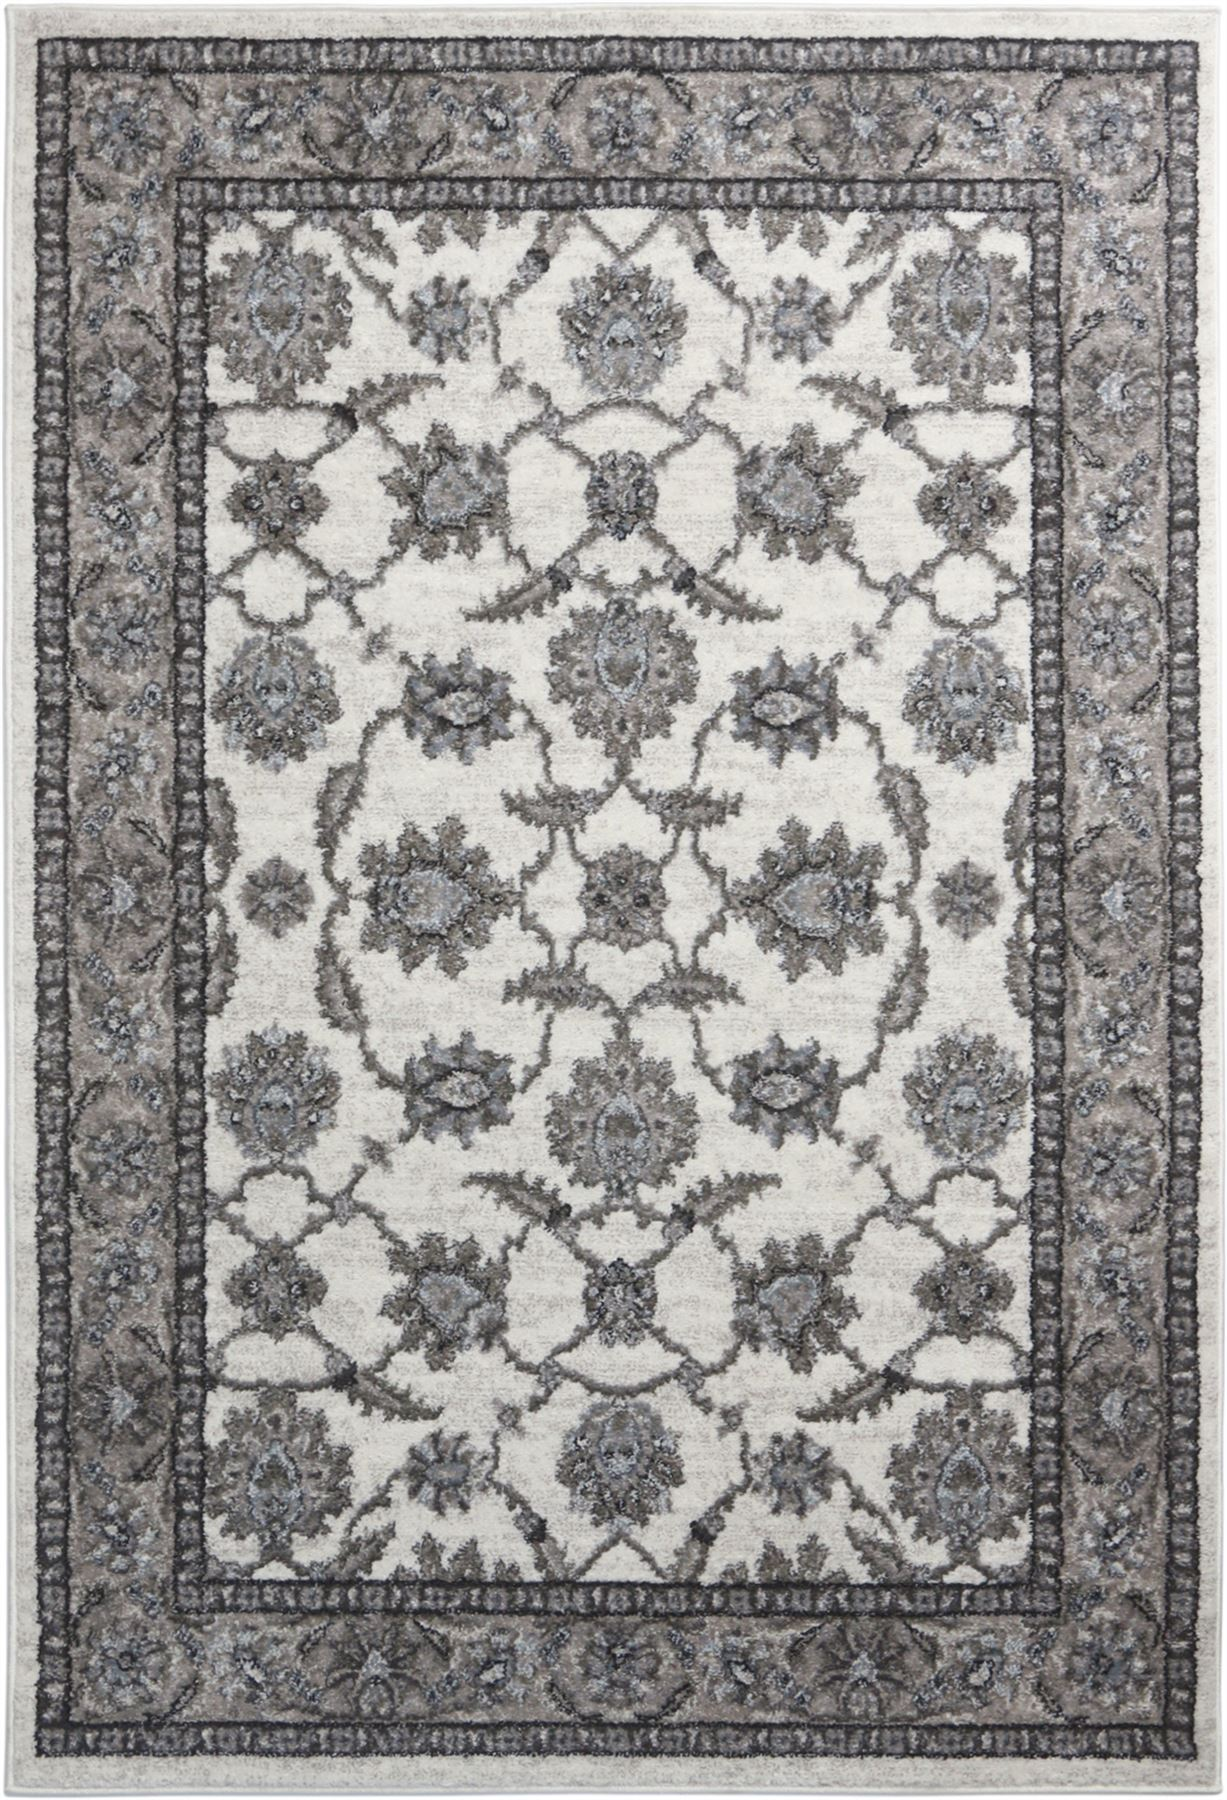 Large-Quality-Traditional-Area-Rug-Assorted-Persian-Floral-Designs-Carpet-Runner thumbnail 19